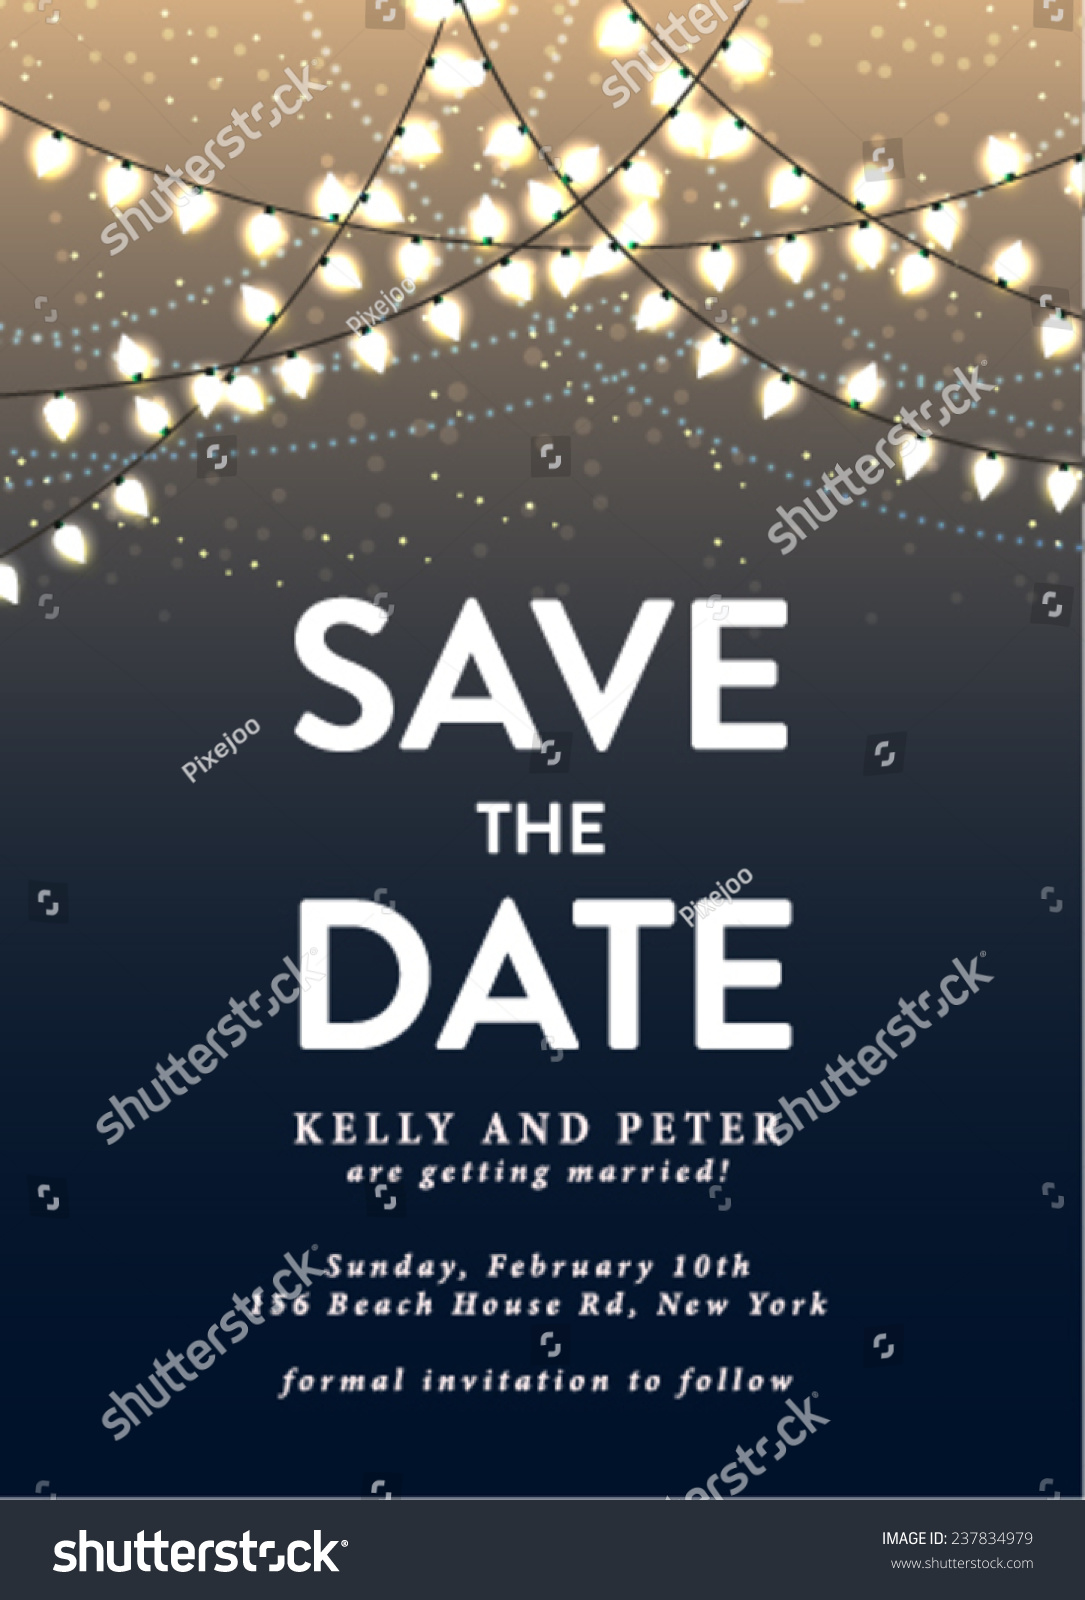 Save date invitation card holiday lights stock vector 237834979 shutterstock for Save the date vector